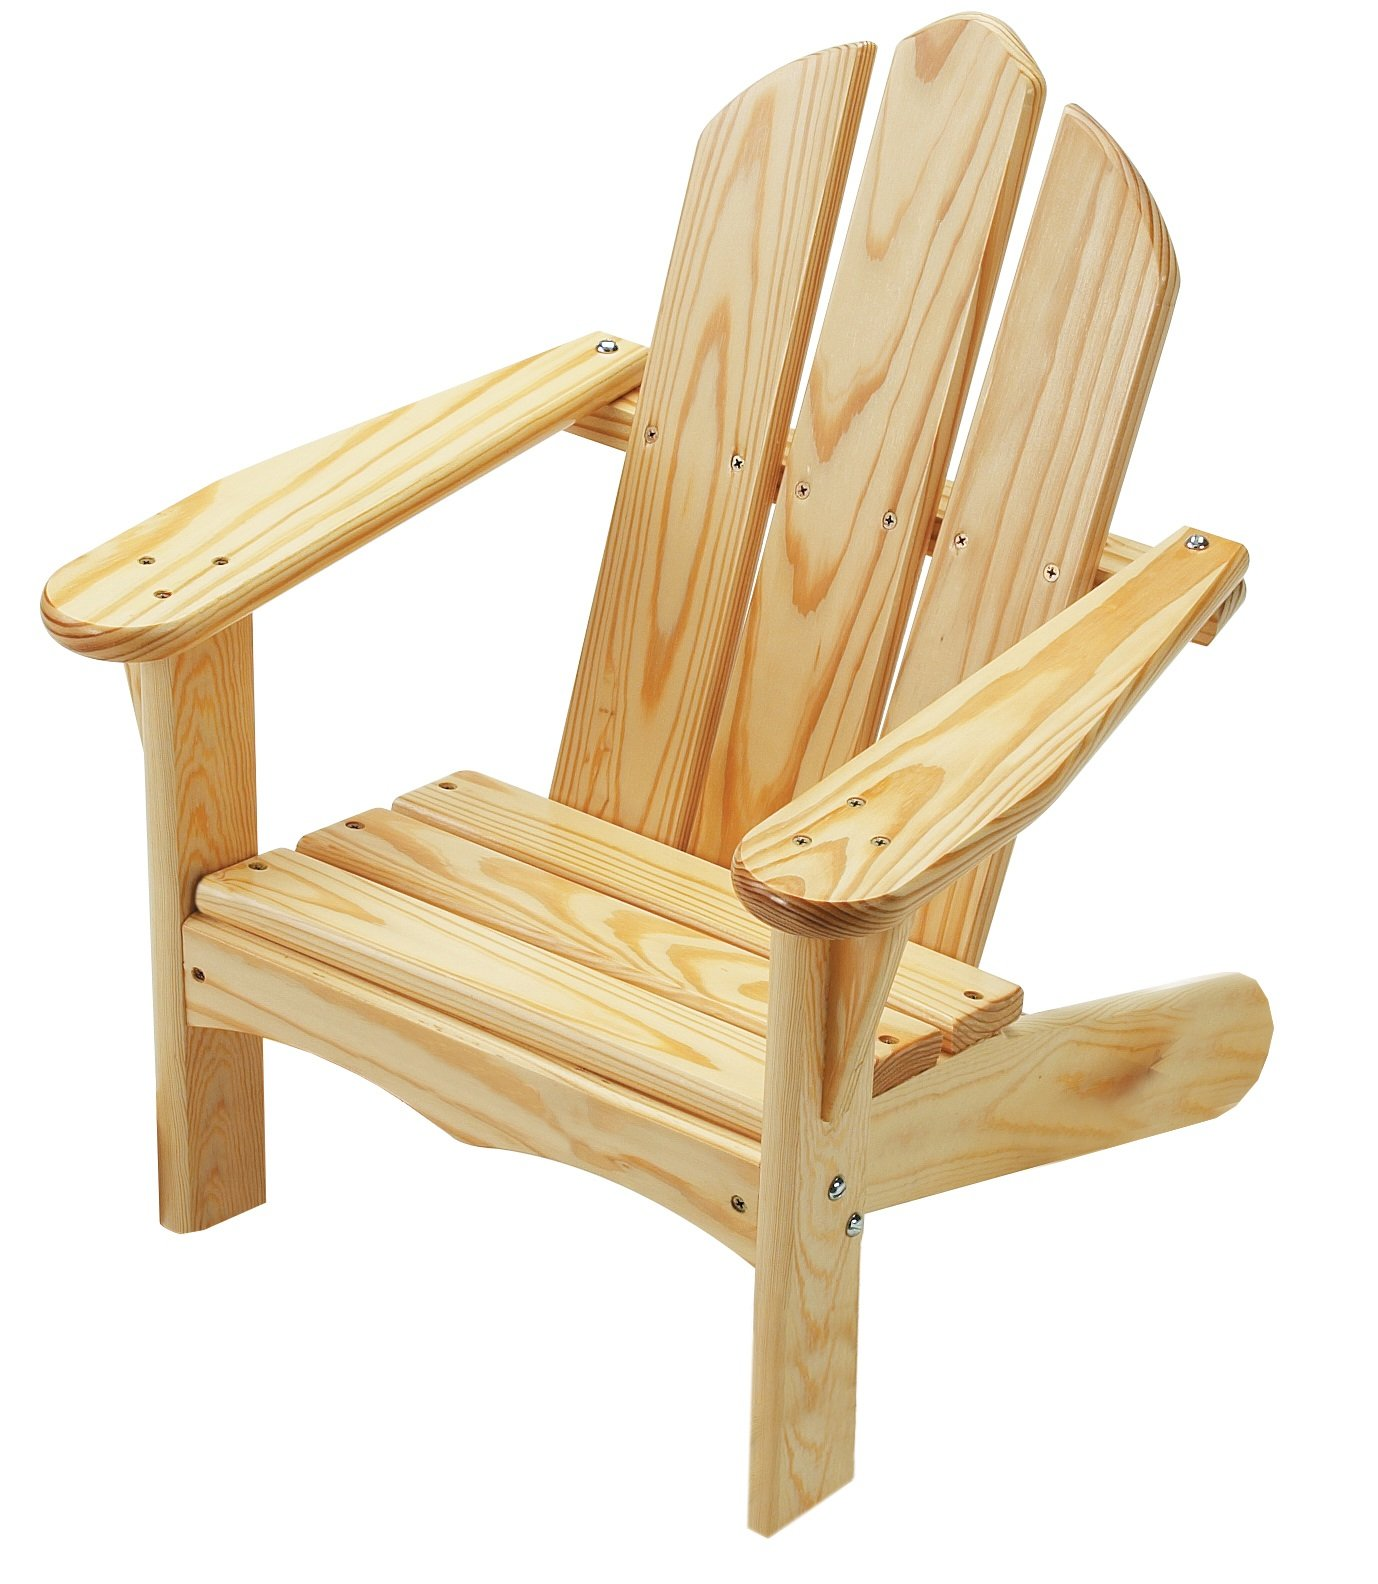 Little Colorado Child's Adirondack Chair- Unfinished by Little Colorado